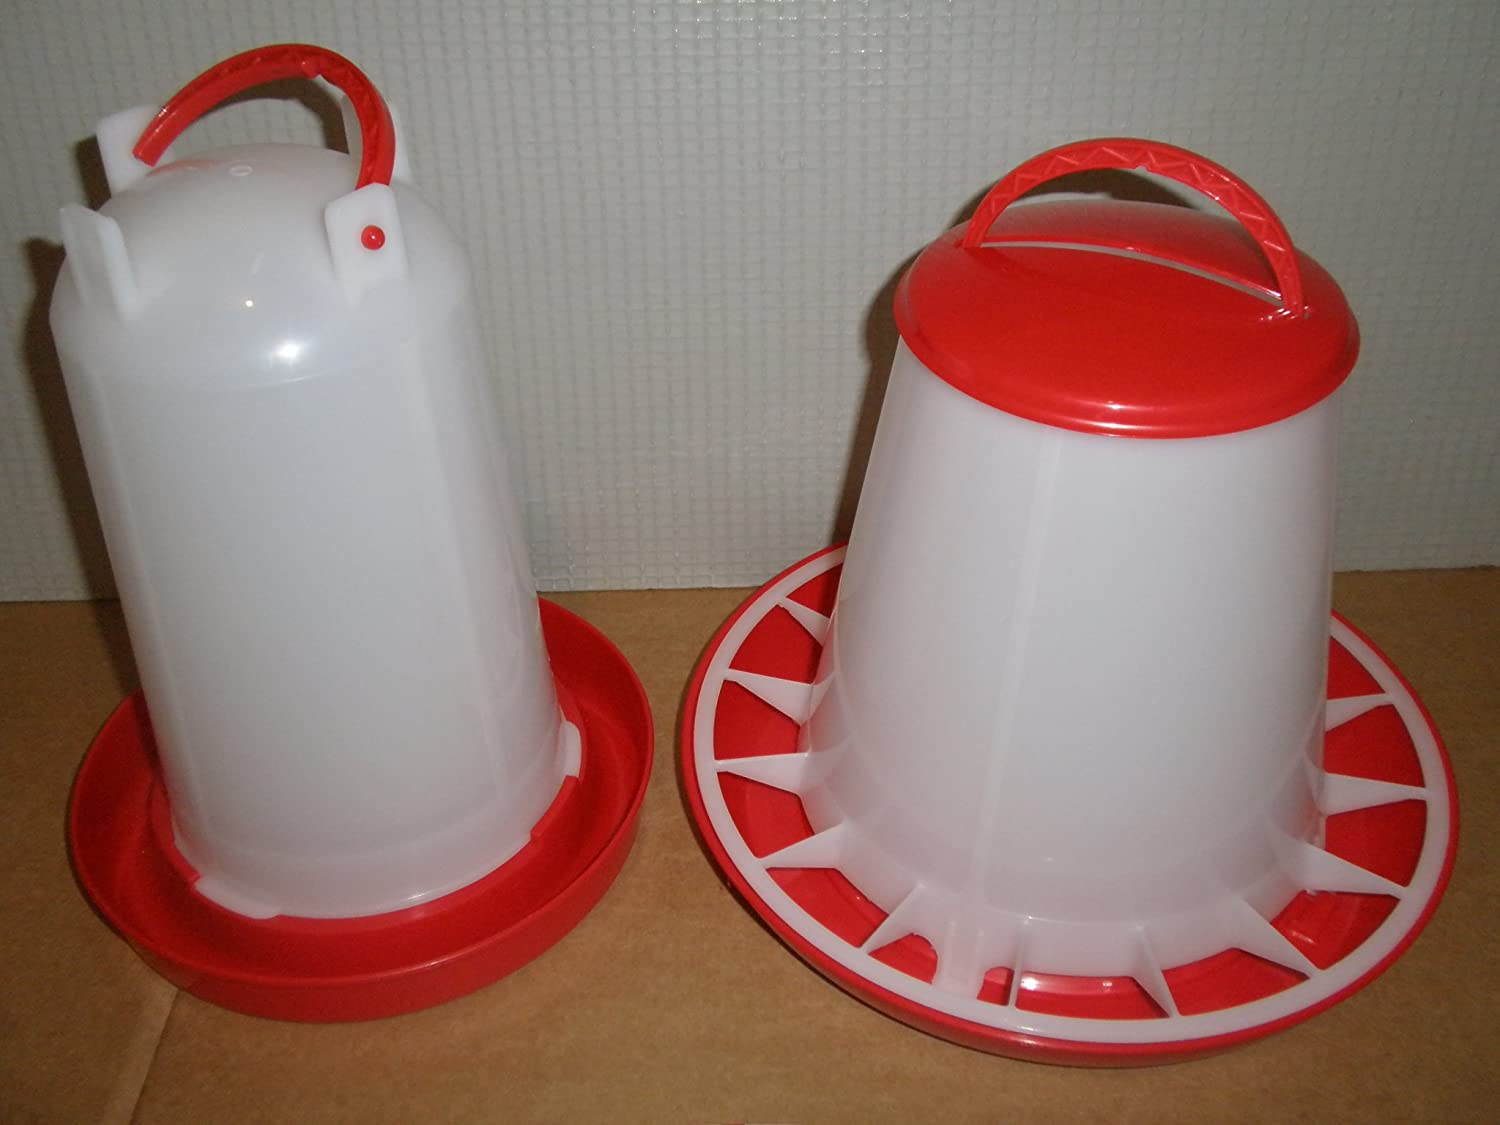 3 kg Plastic poultry chicken feeder & 3 litre plastic poultry drinker set UK Cake Craft Supplies